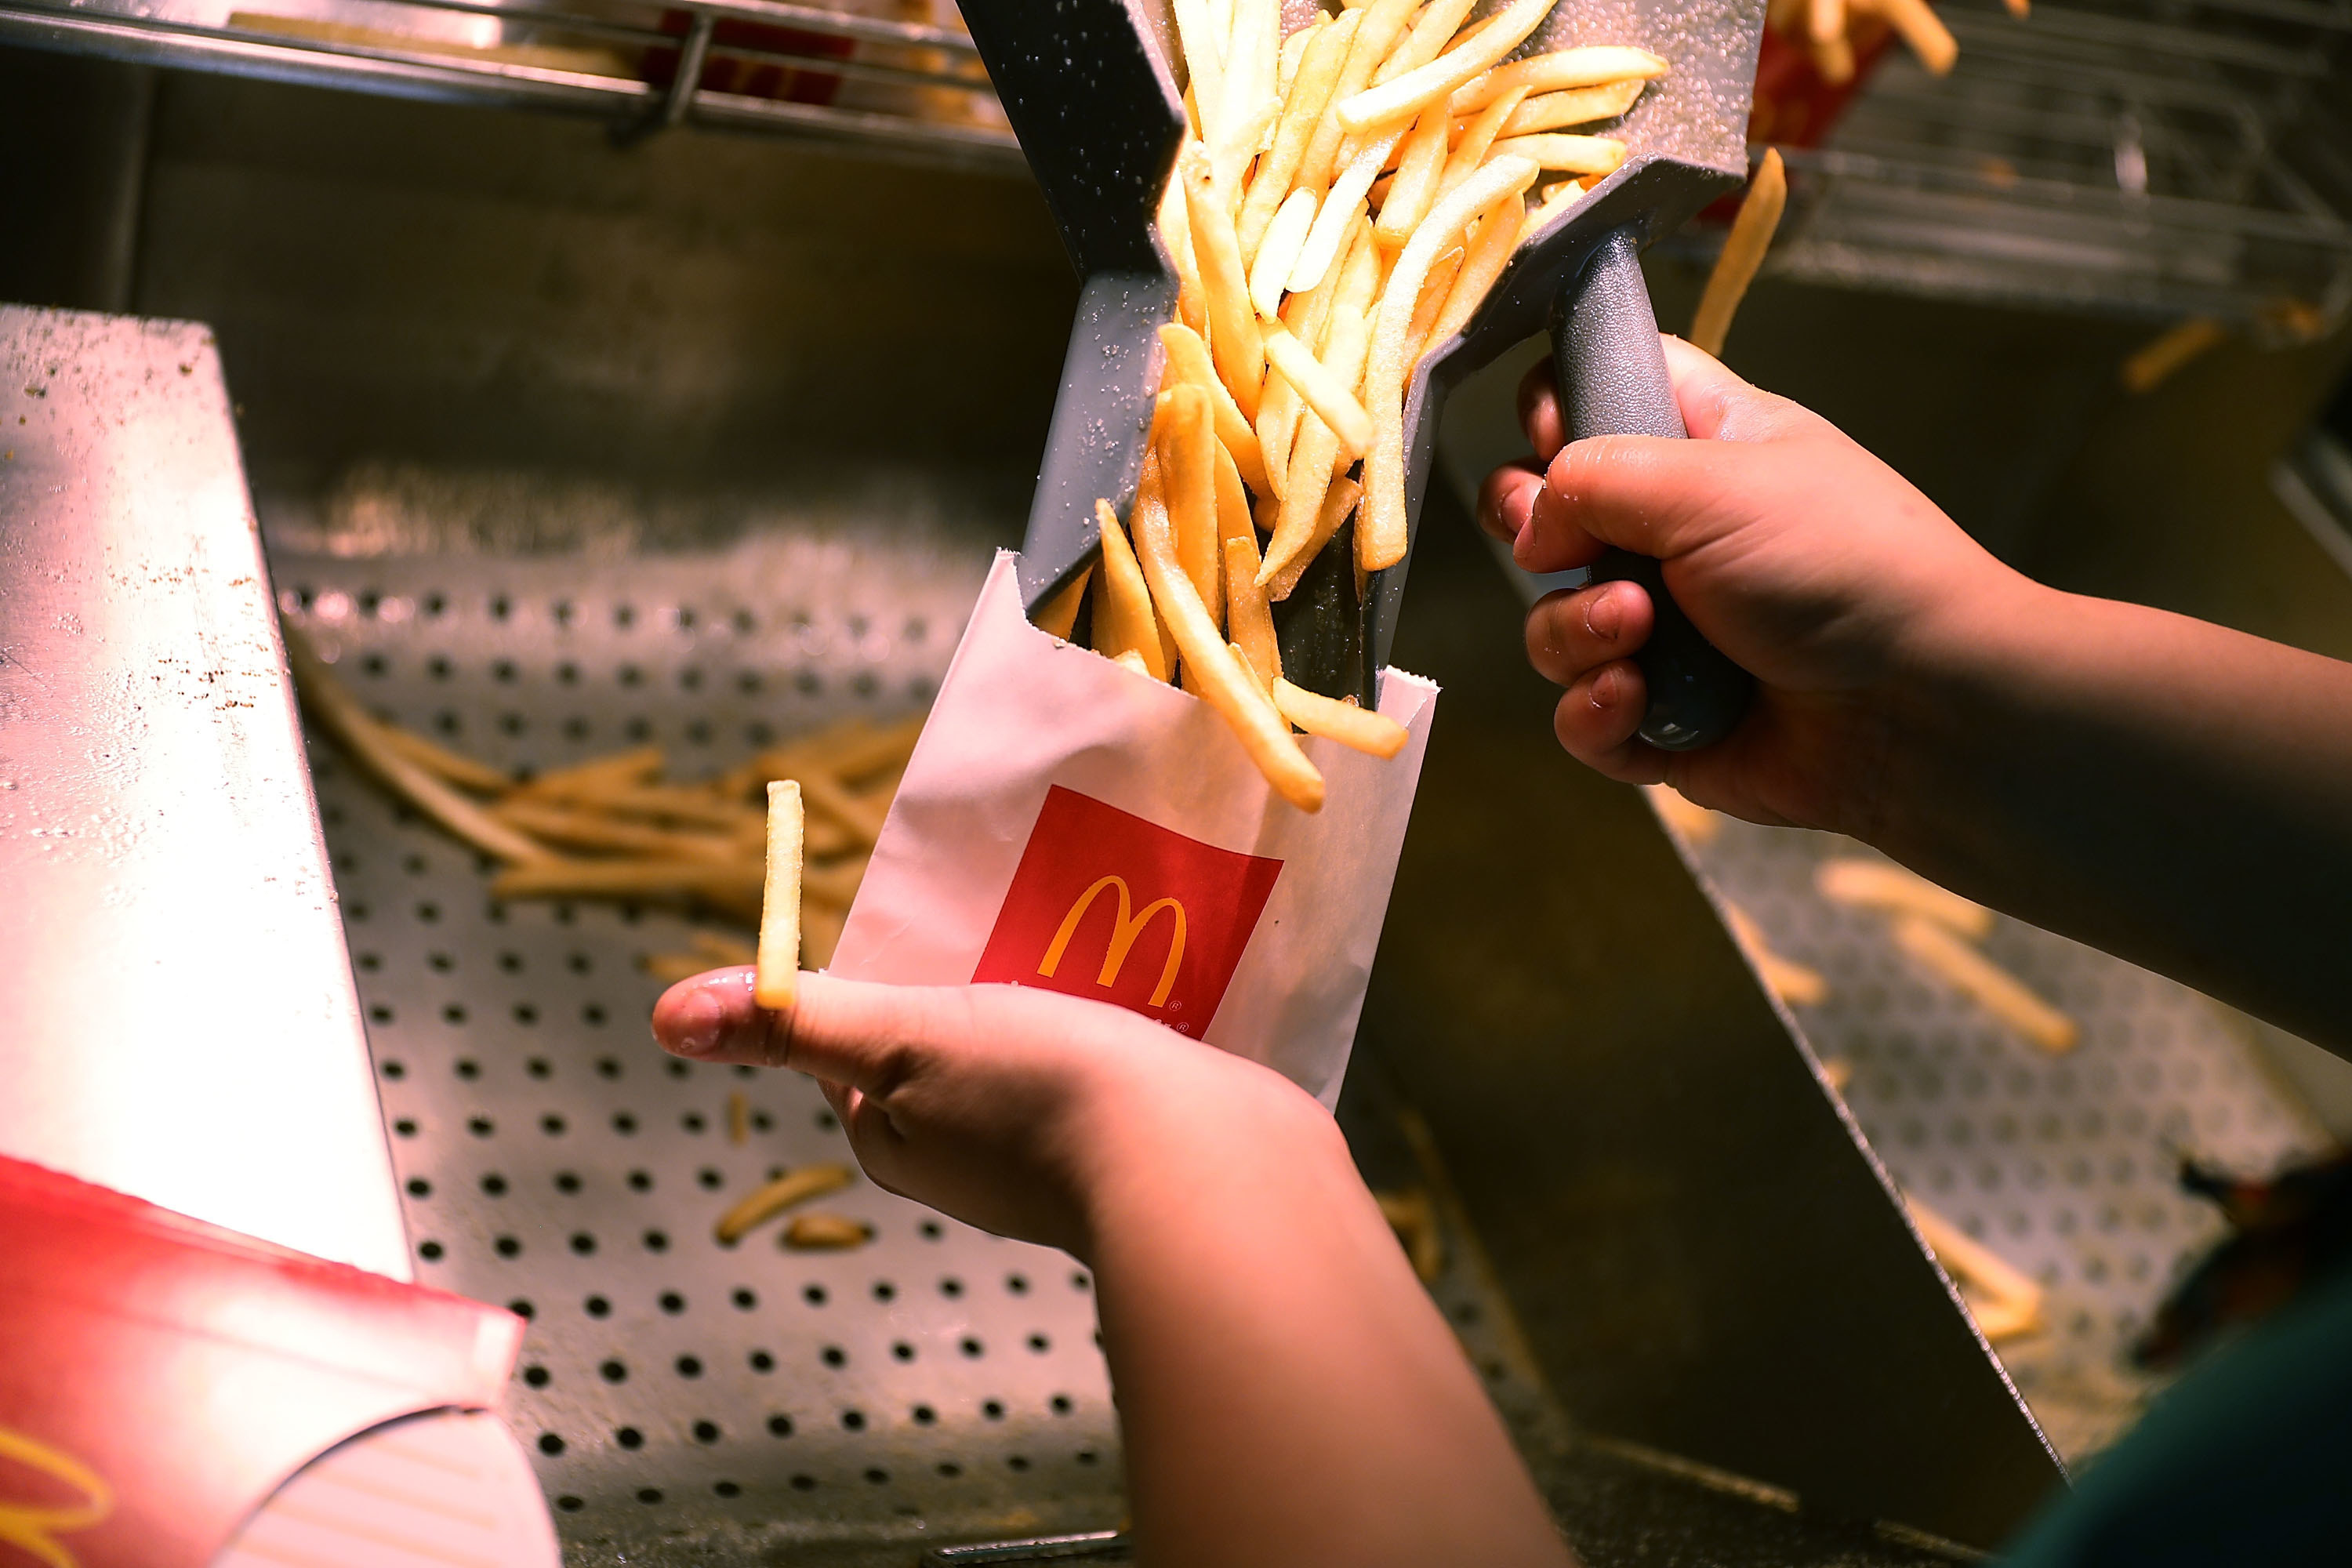 Person putting fries into a McDonald's packet